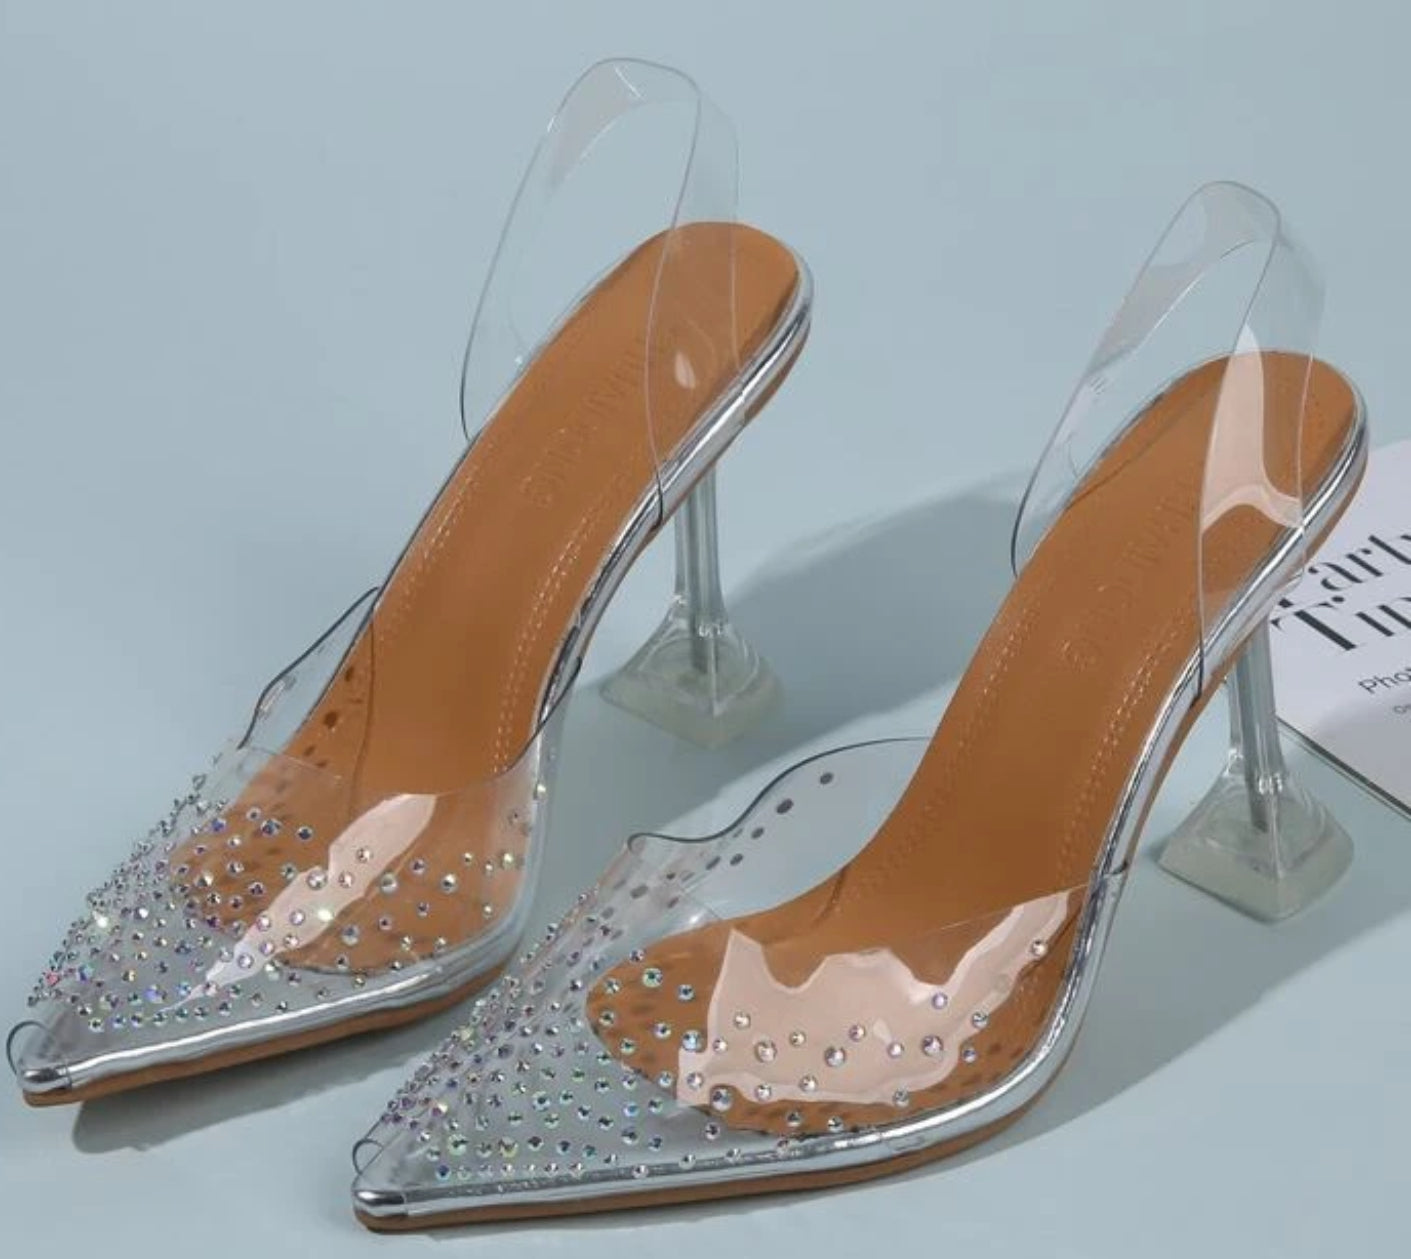 Lara - High heel - Clear & Rhinestone